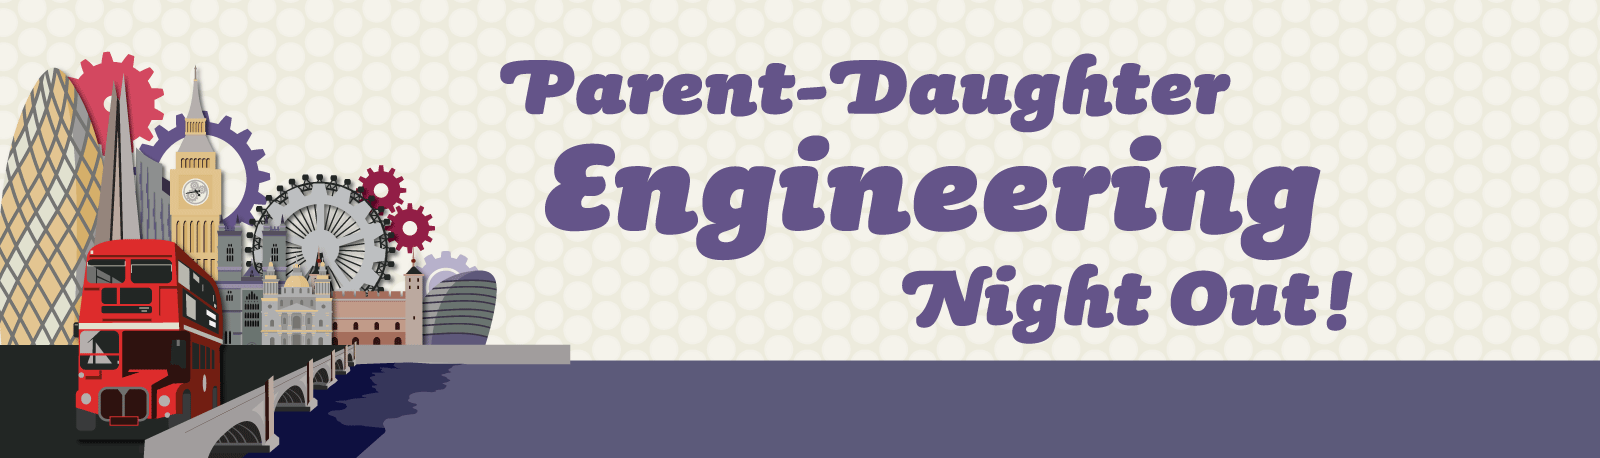 parent-daughter engineering night out